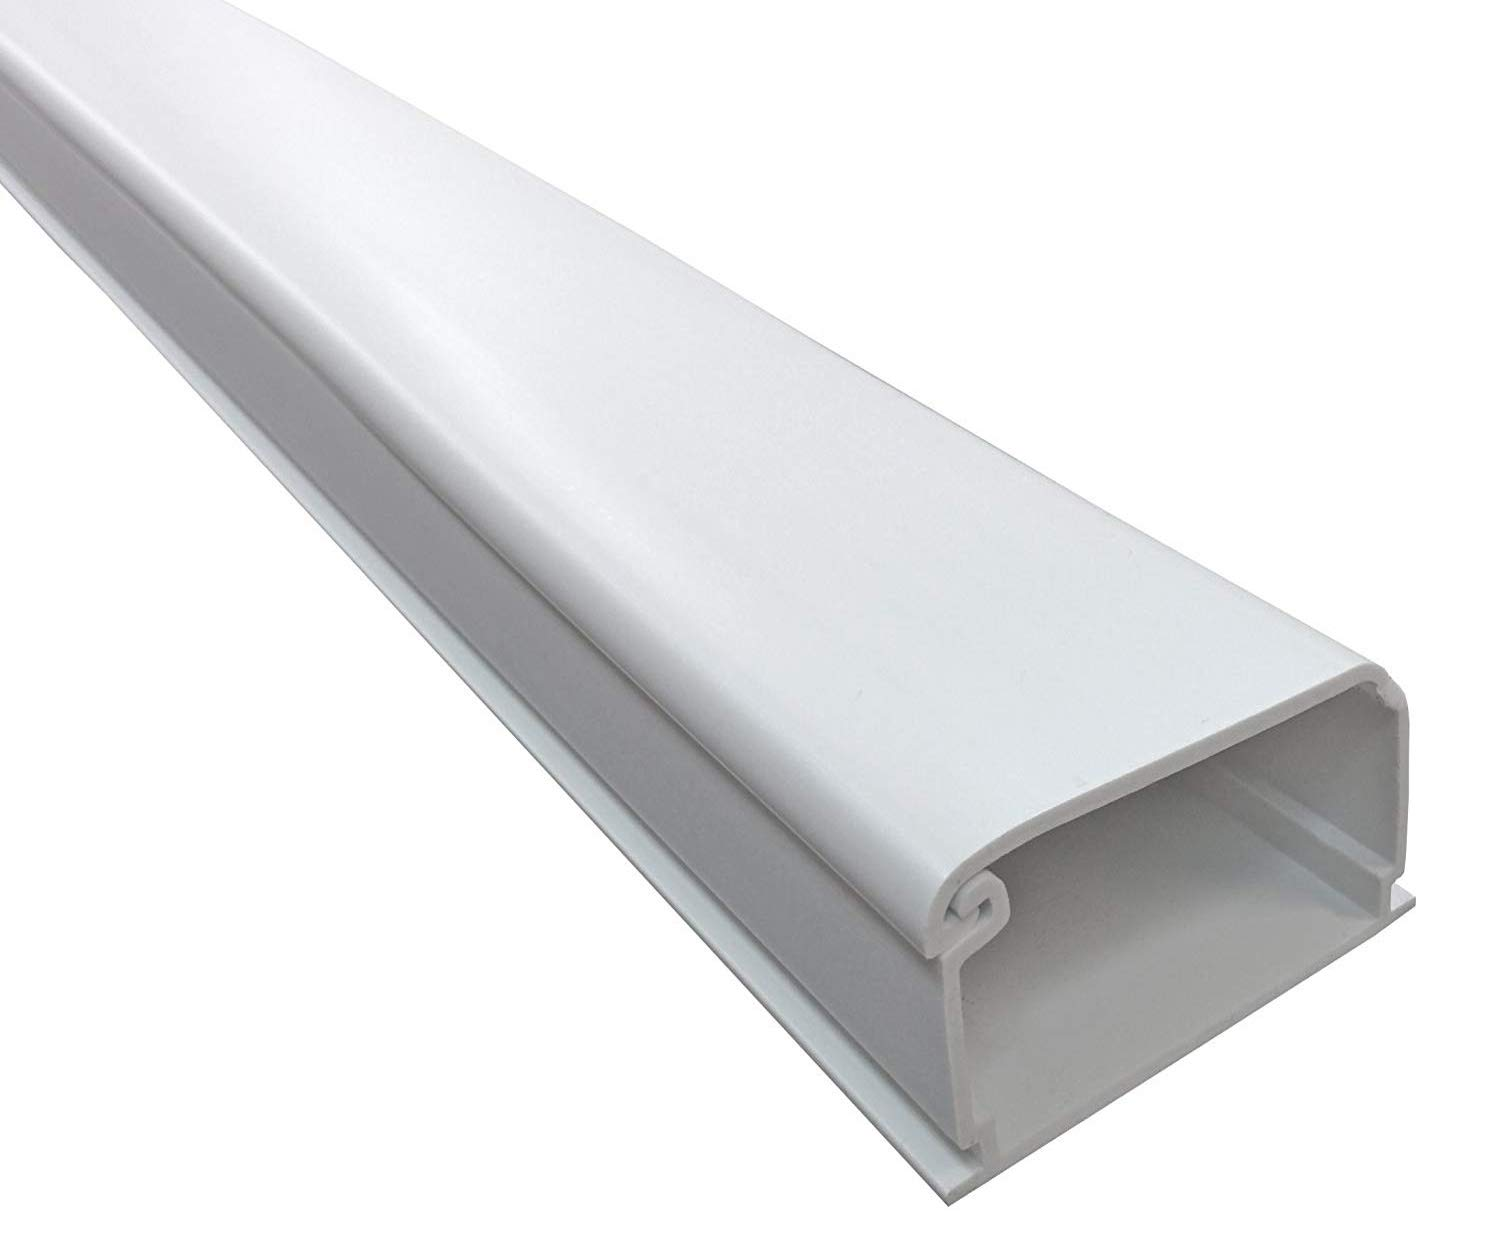 2150 Series Latching Cable Raceway - 2'' x 1.5'' Channel Size - 1 Stick - 5FT Long - Color: White